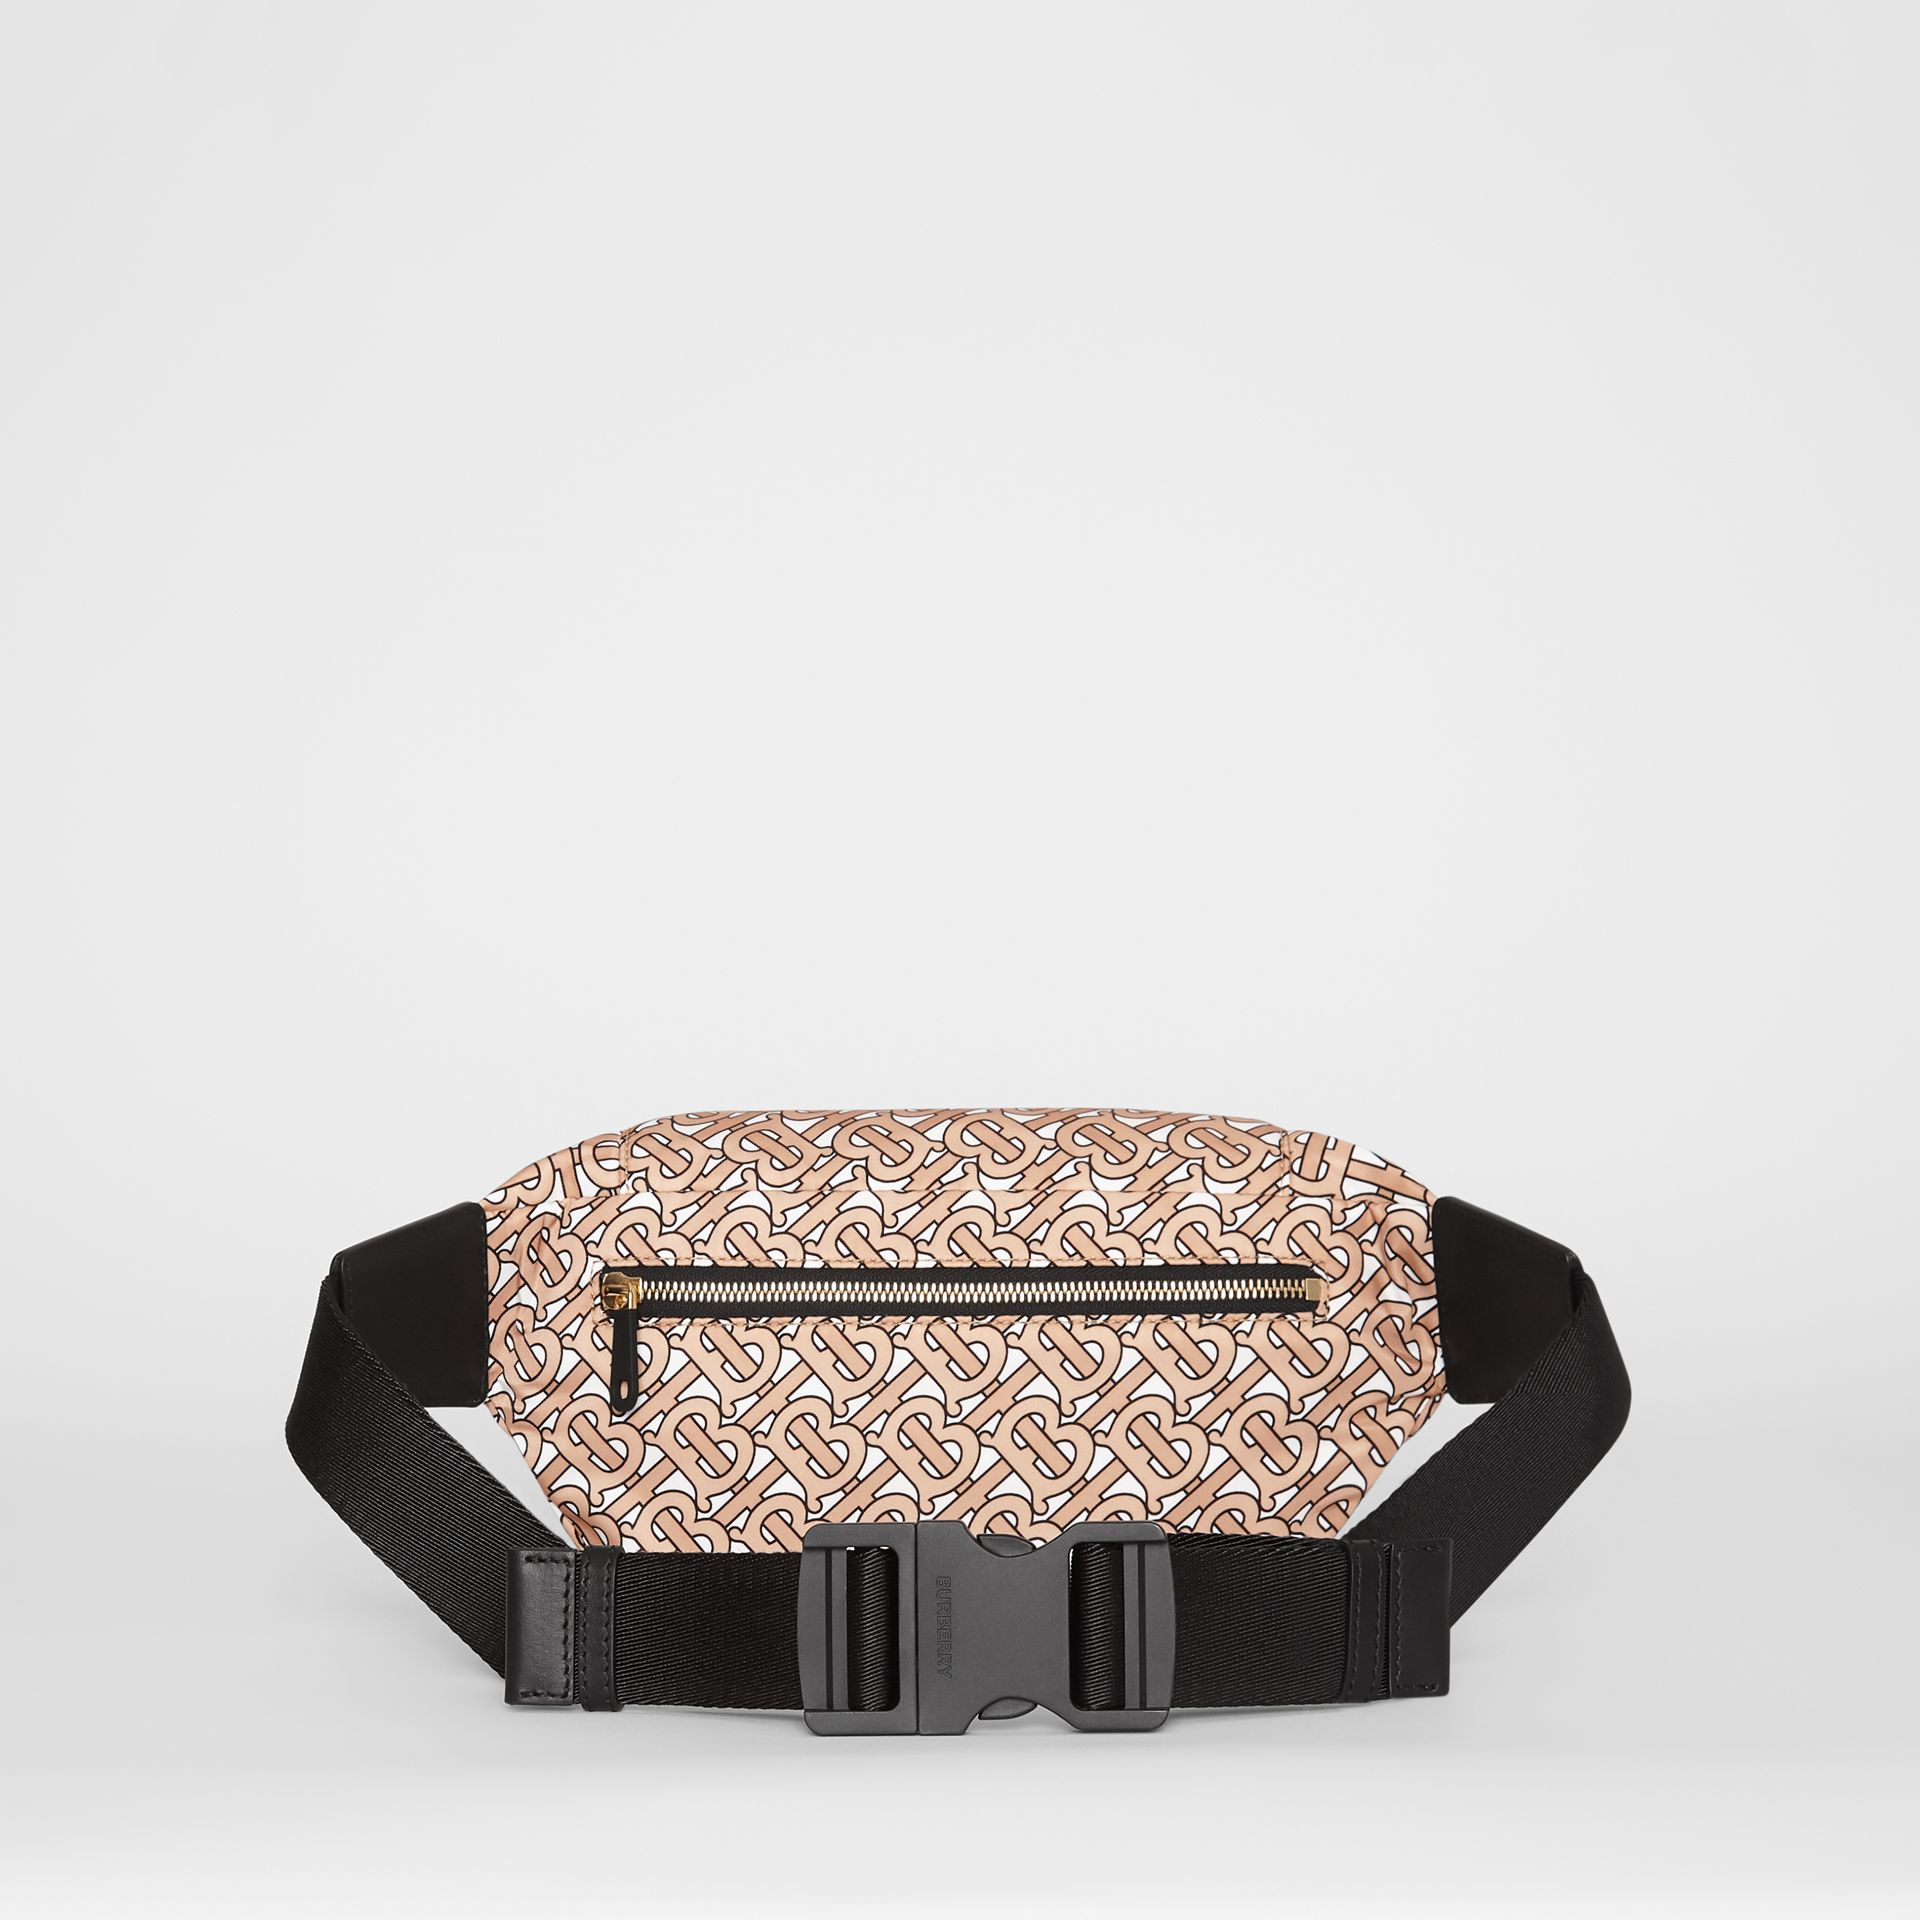 Medium Monogram Print Bum Bag in Beige | Burberry Canada - gallery image 9